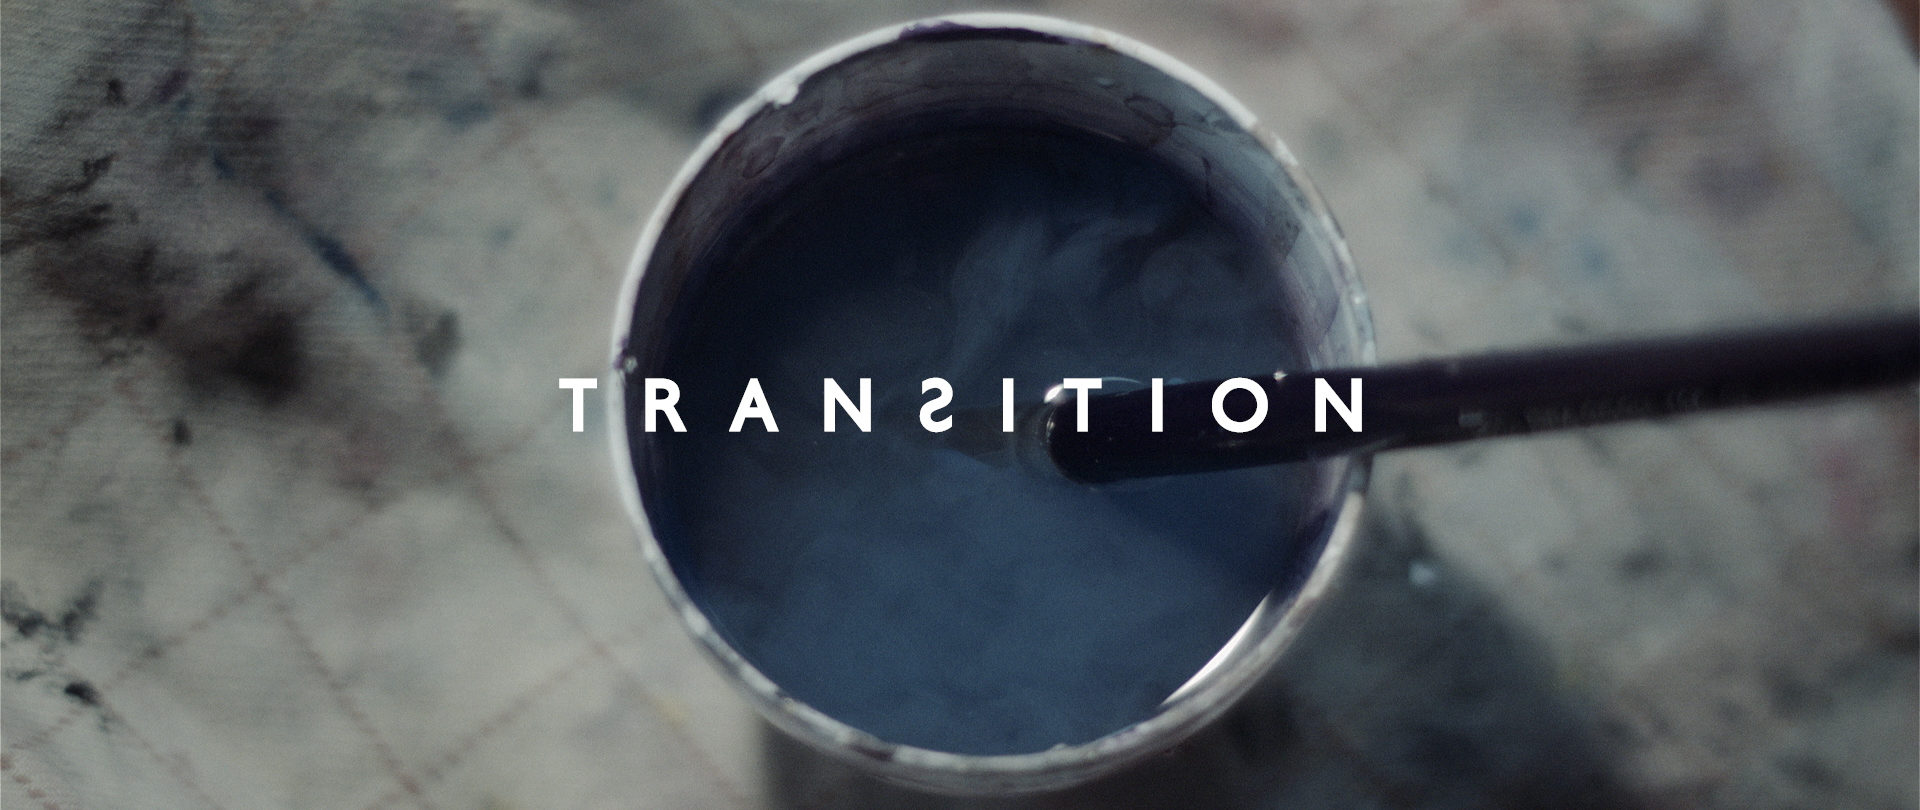 A work by Does - Documentary transition 6